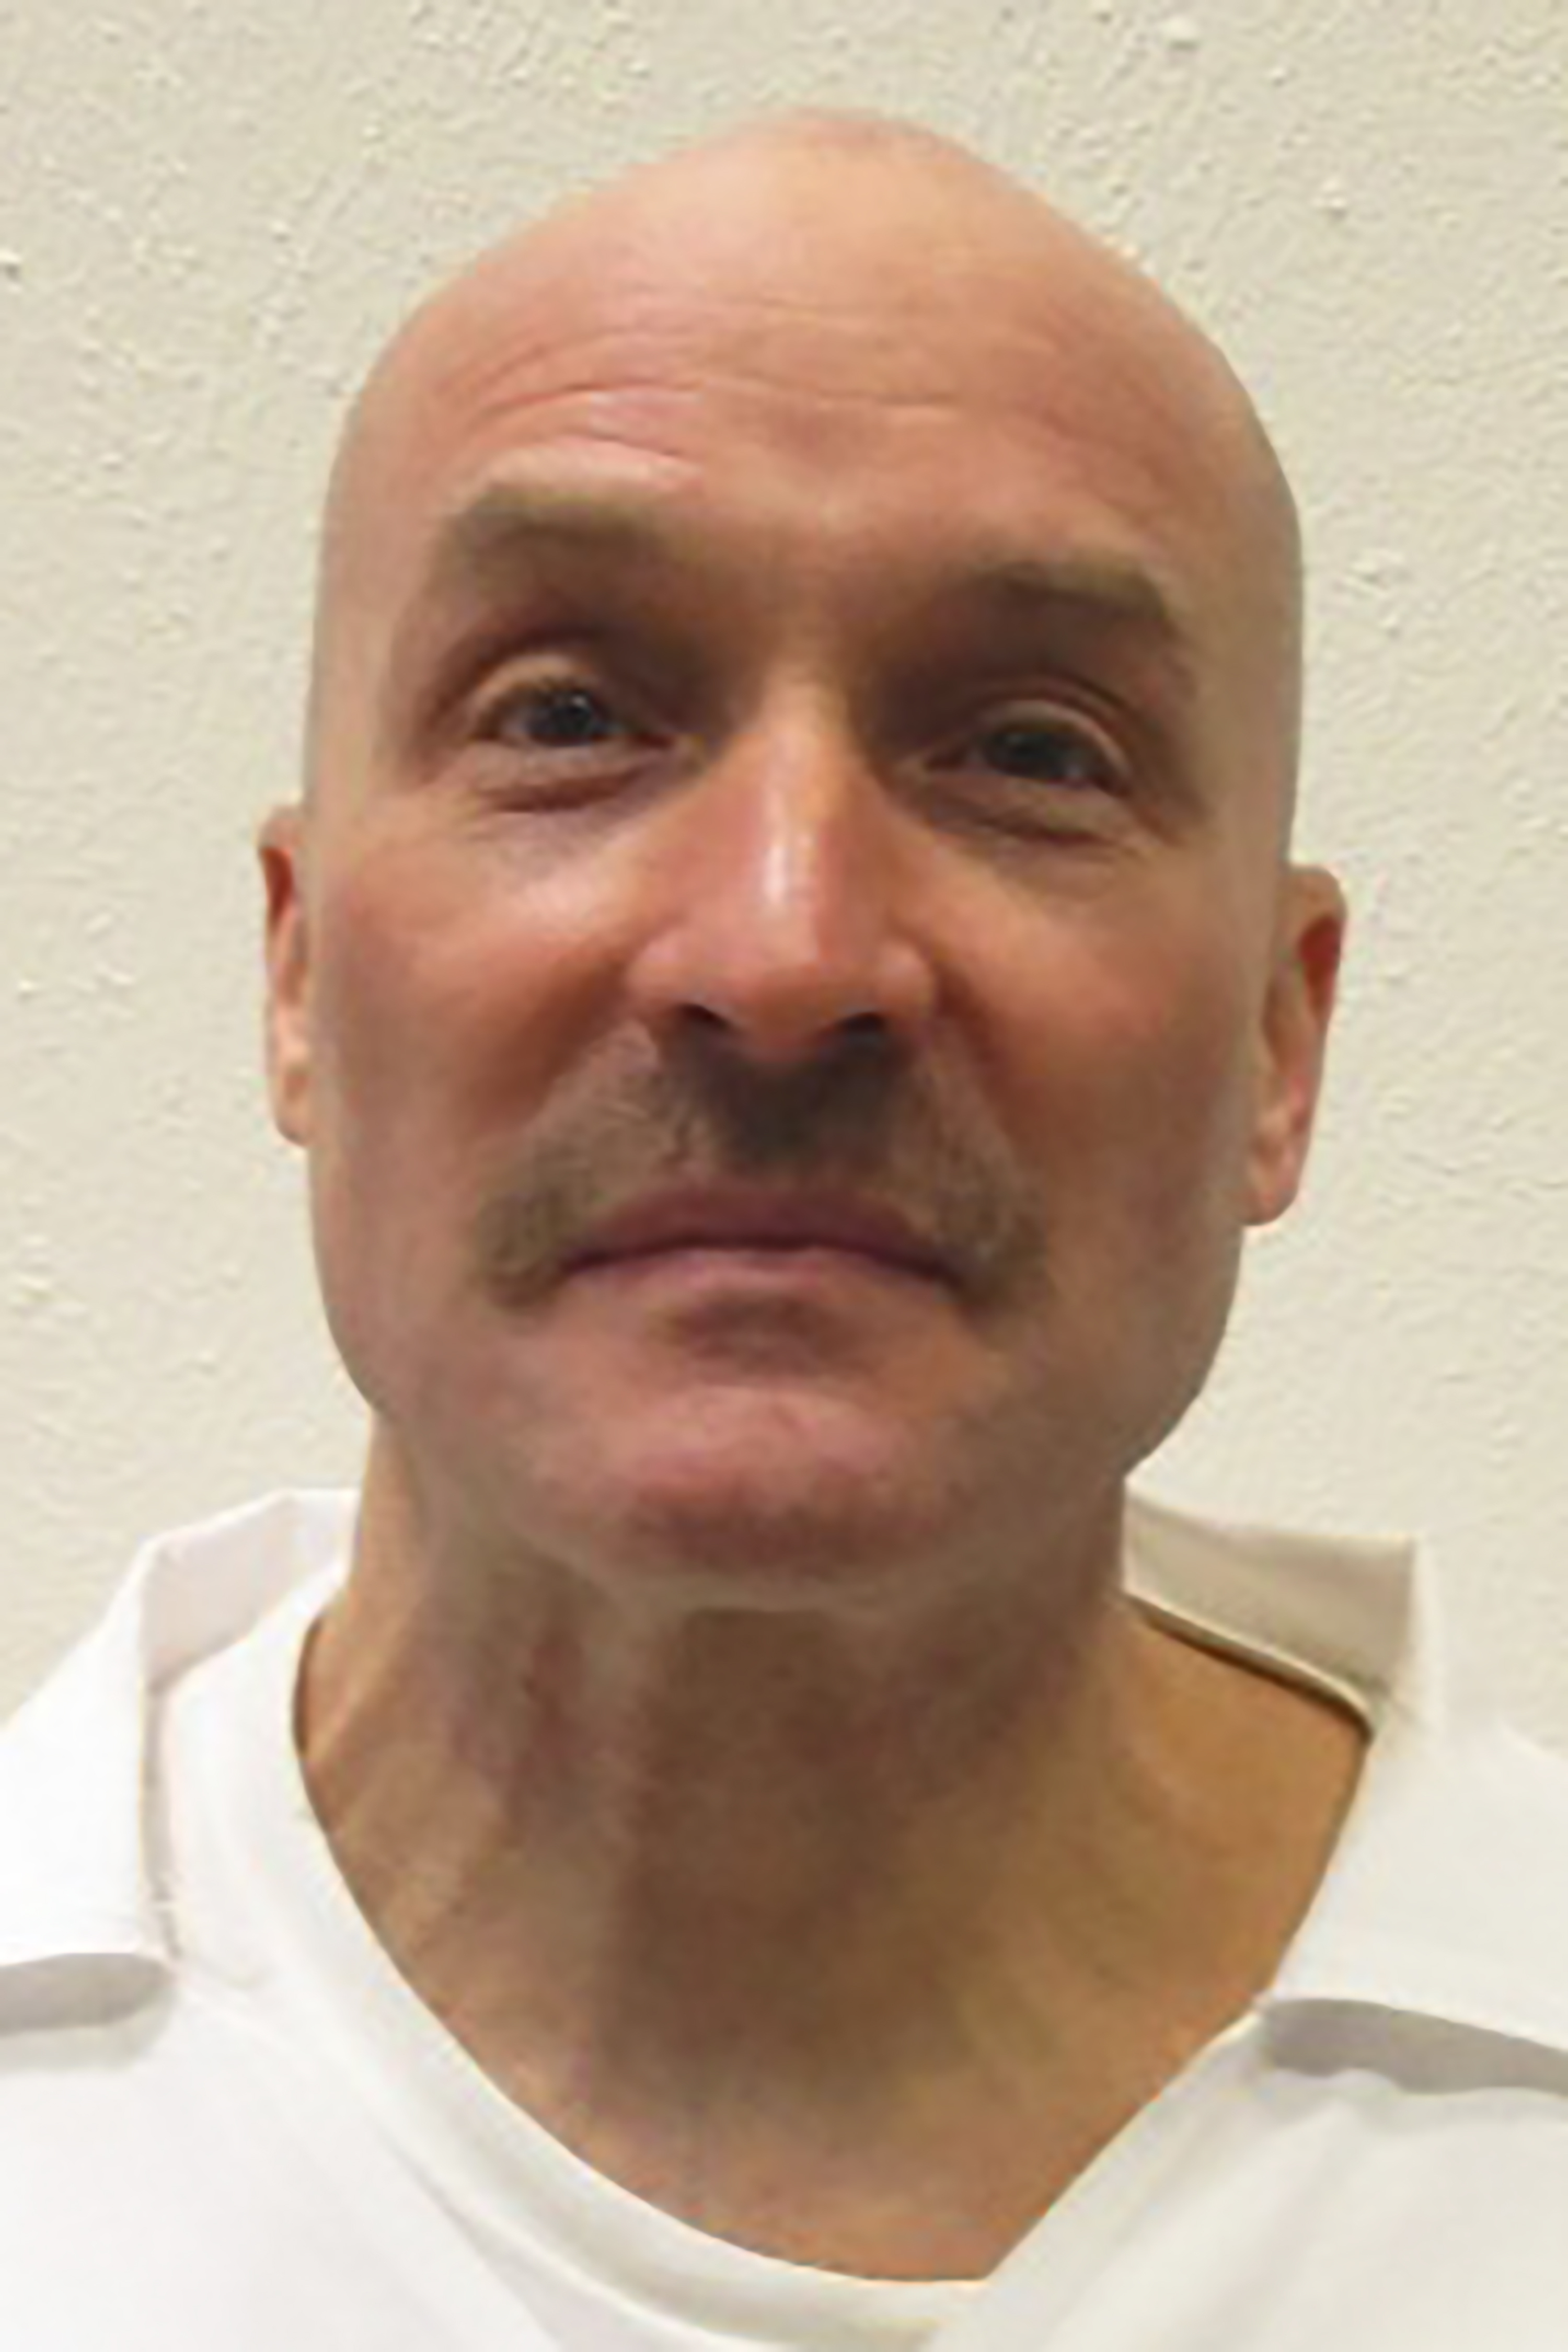 Court rejects death row inmates mental illness claim